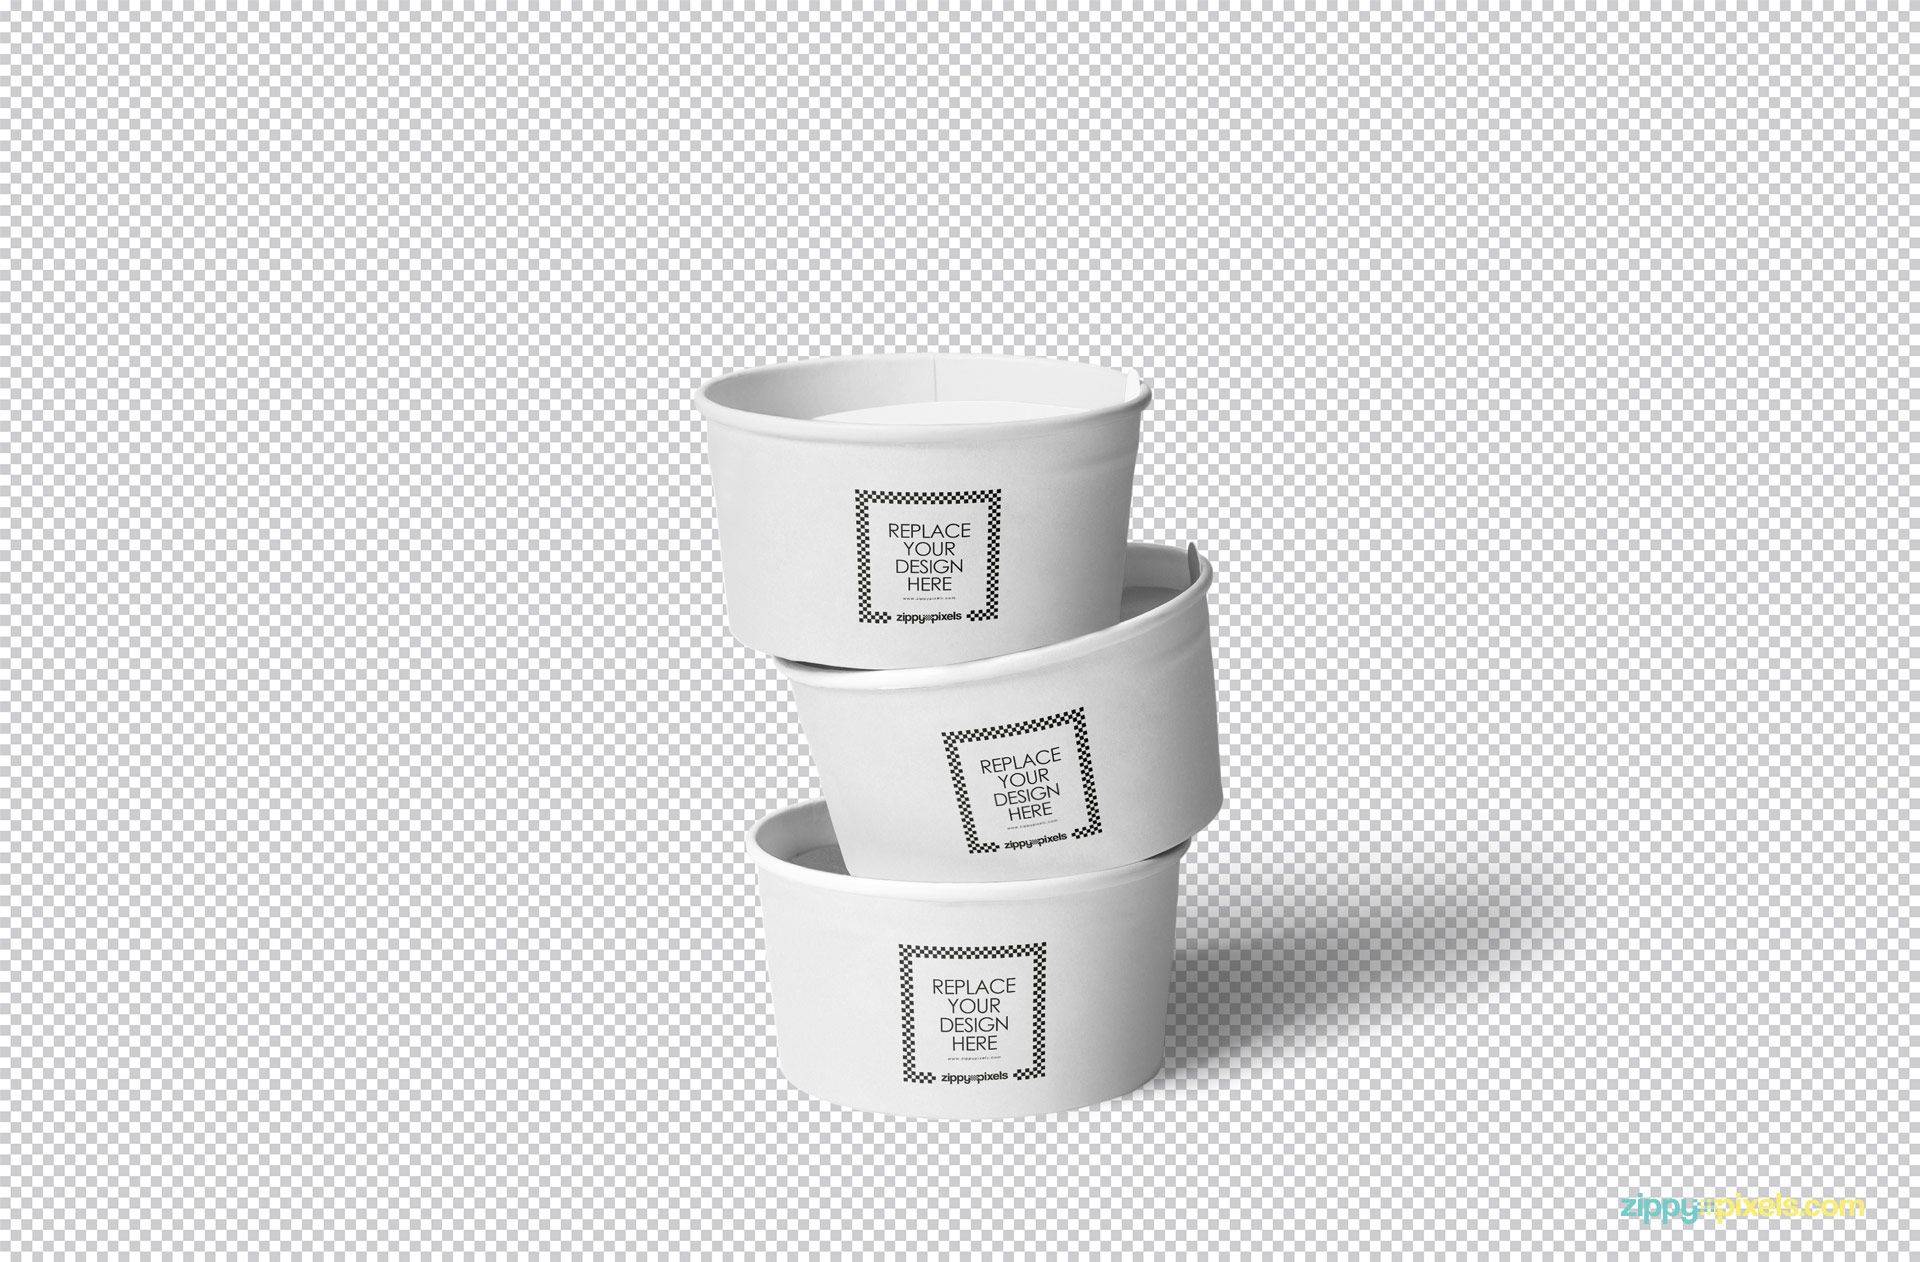 Use smart object to personalize this plain ice cream cup with your designs.